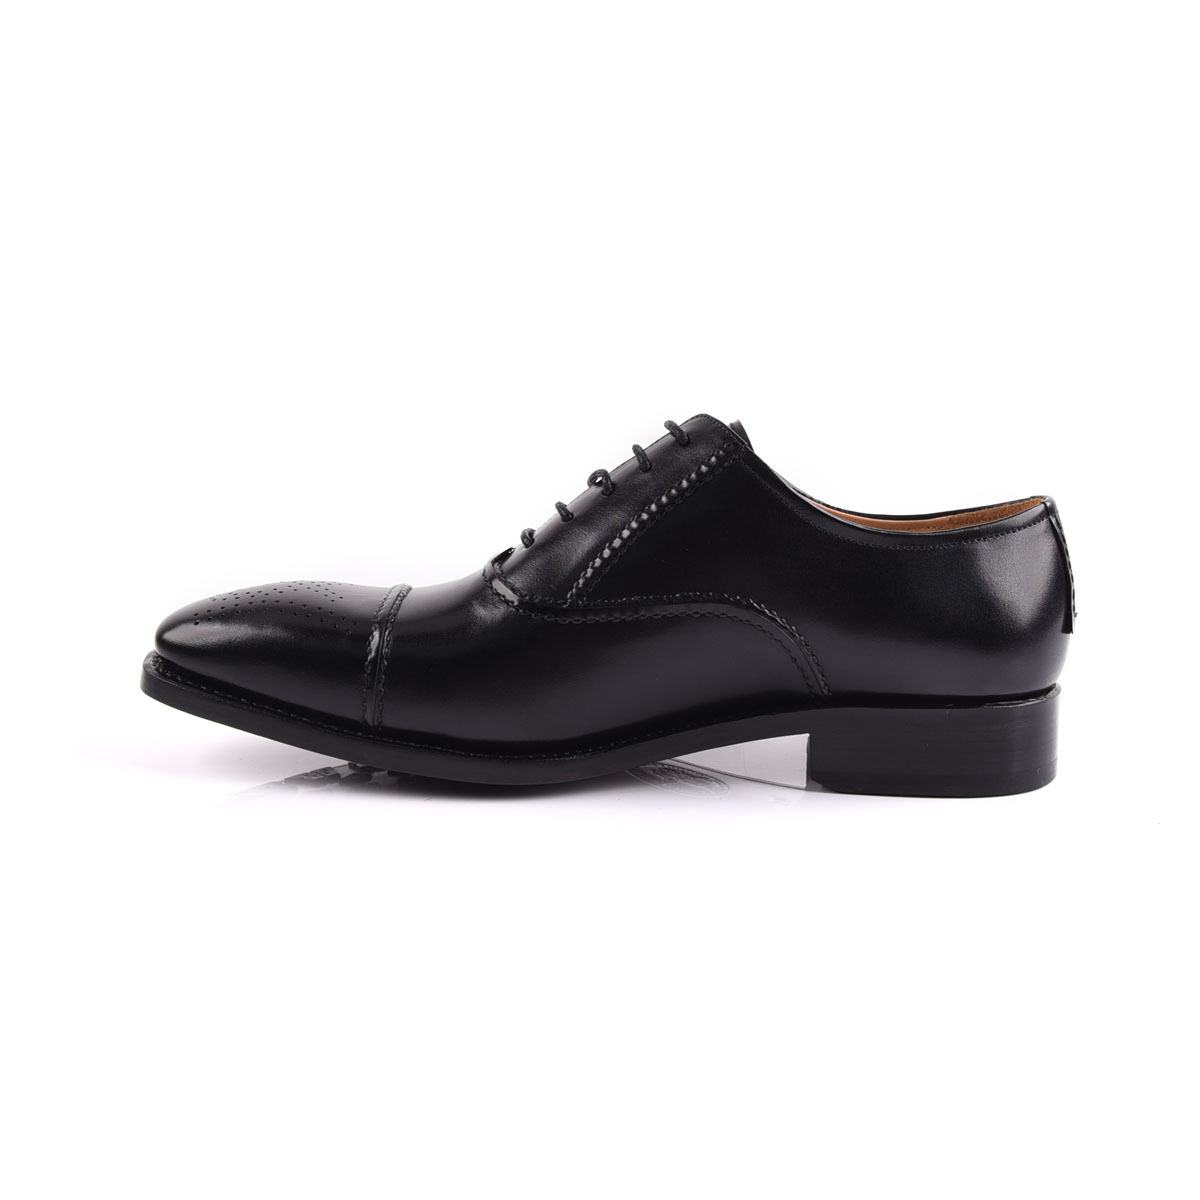 Goodyear leather men classic lace up shoe manufacture